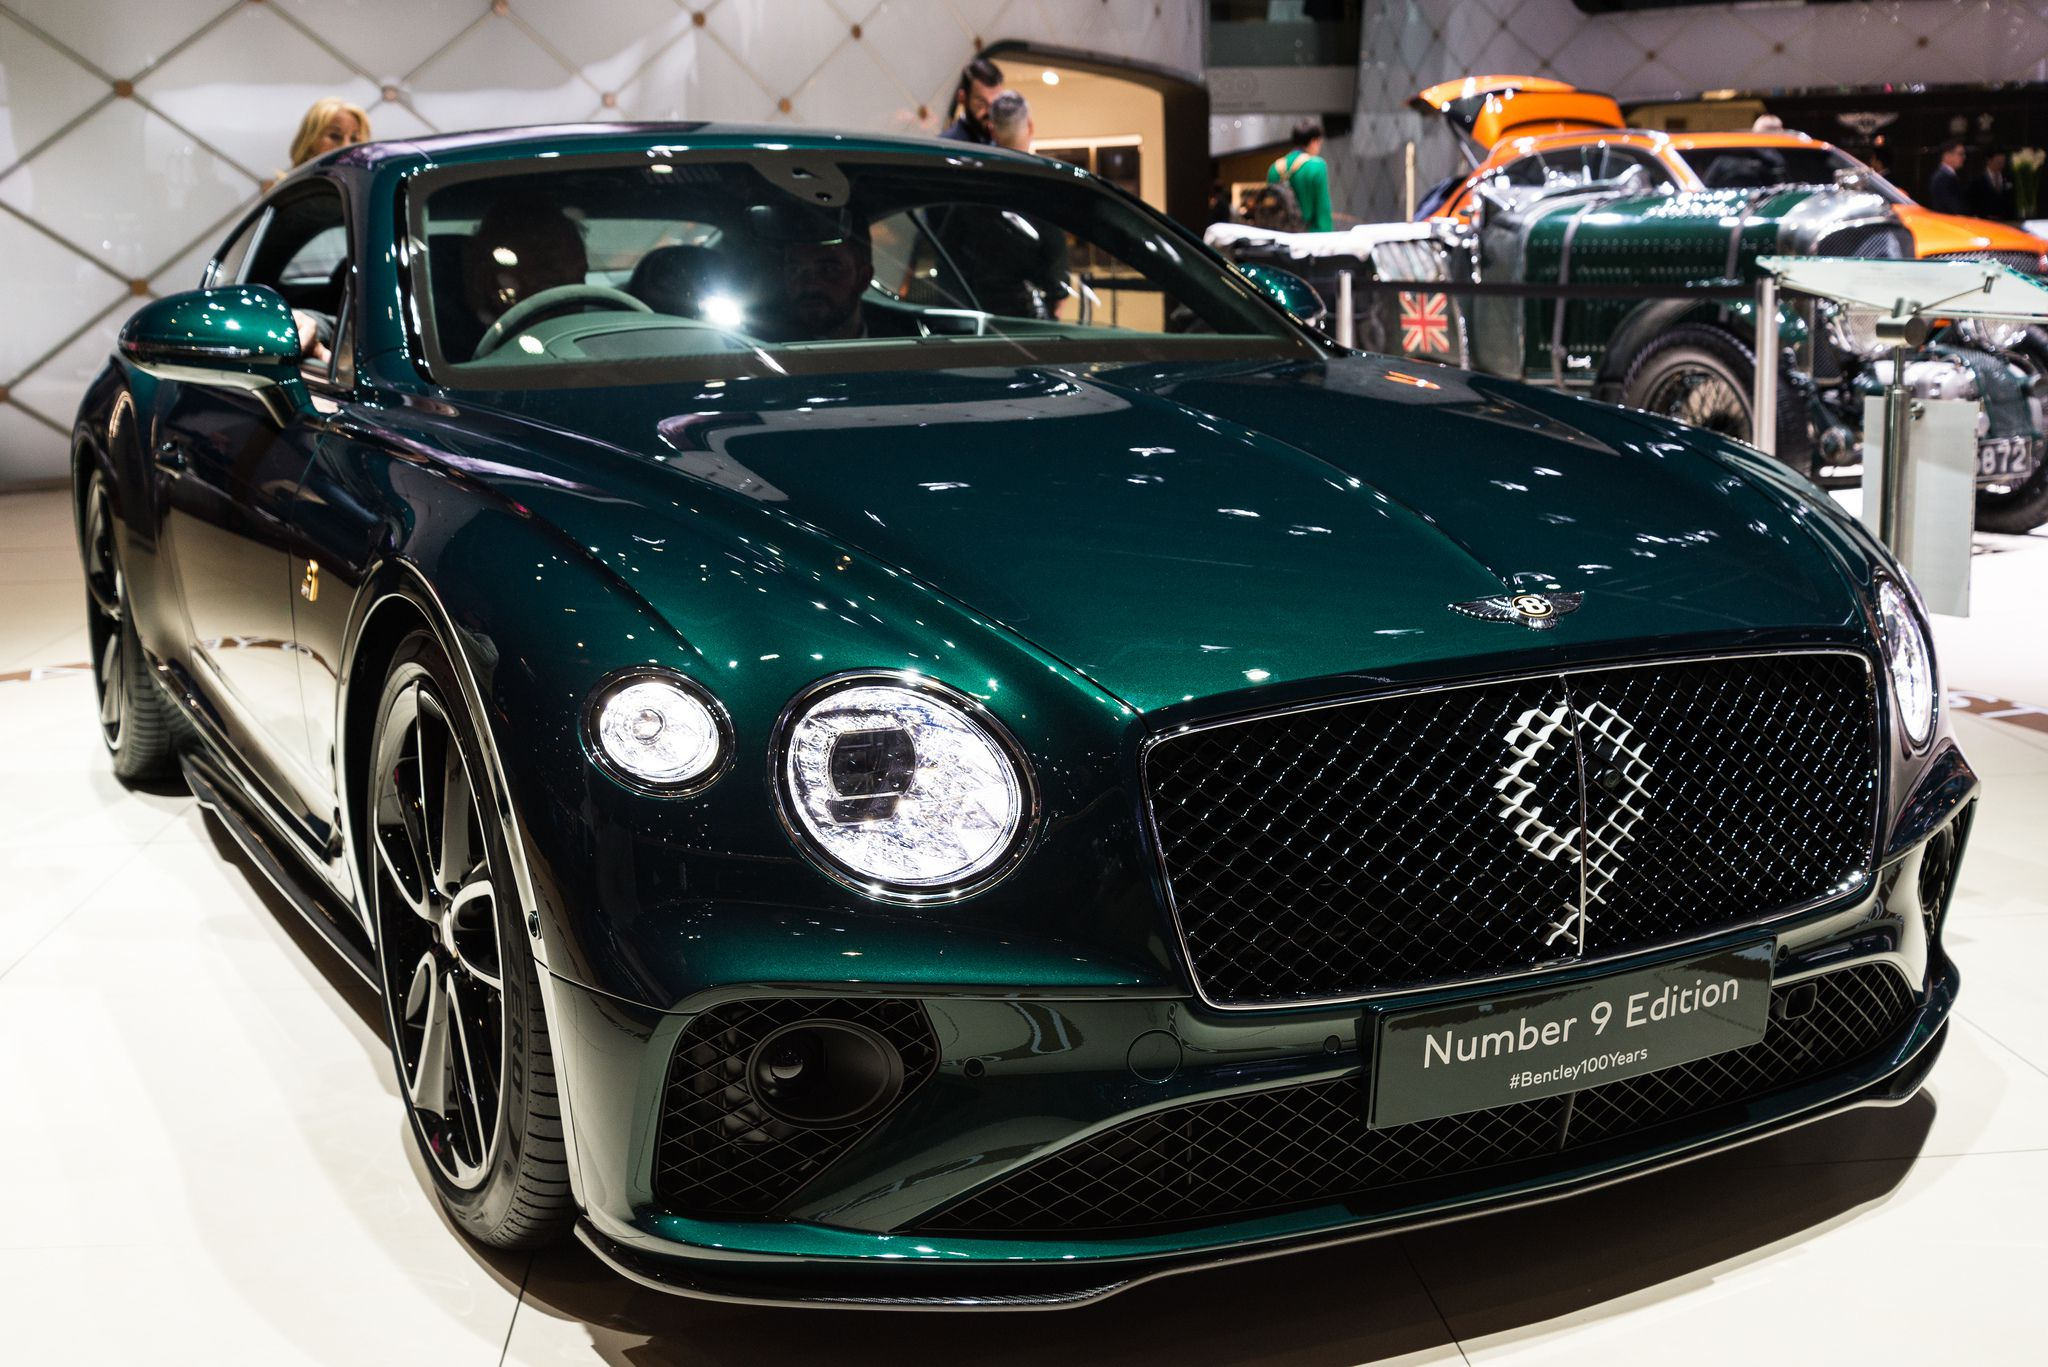 Bentley Number 9 Edition - first look, Geneva 2019